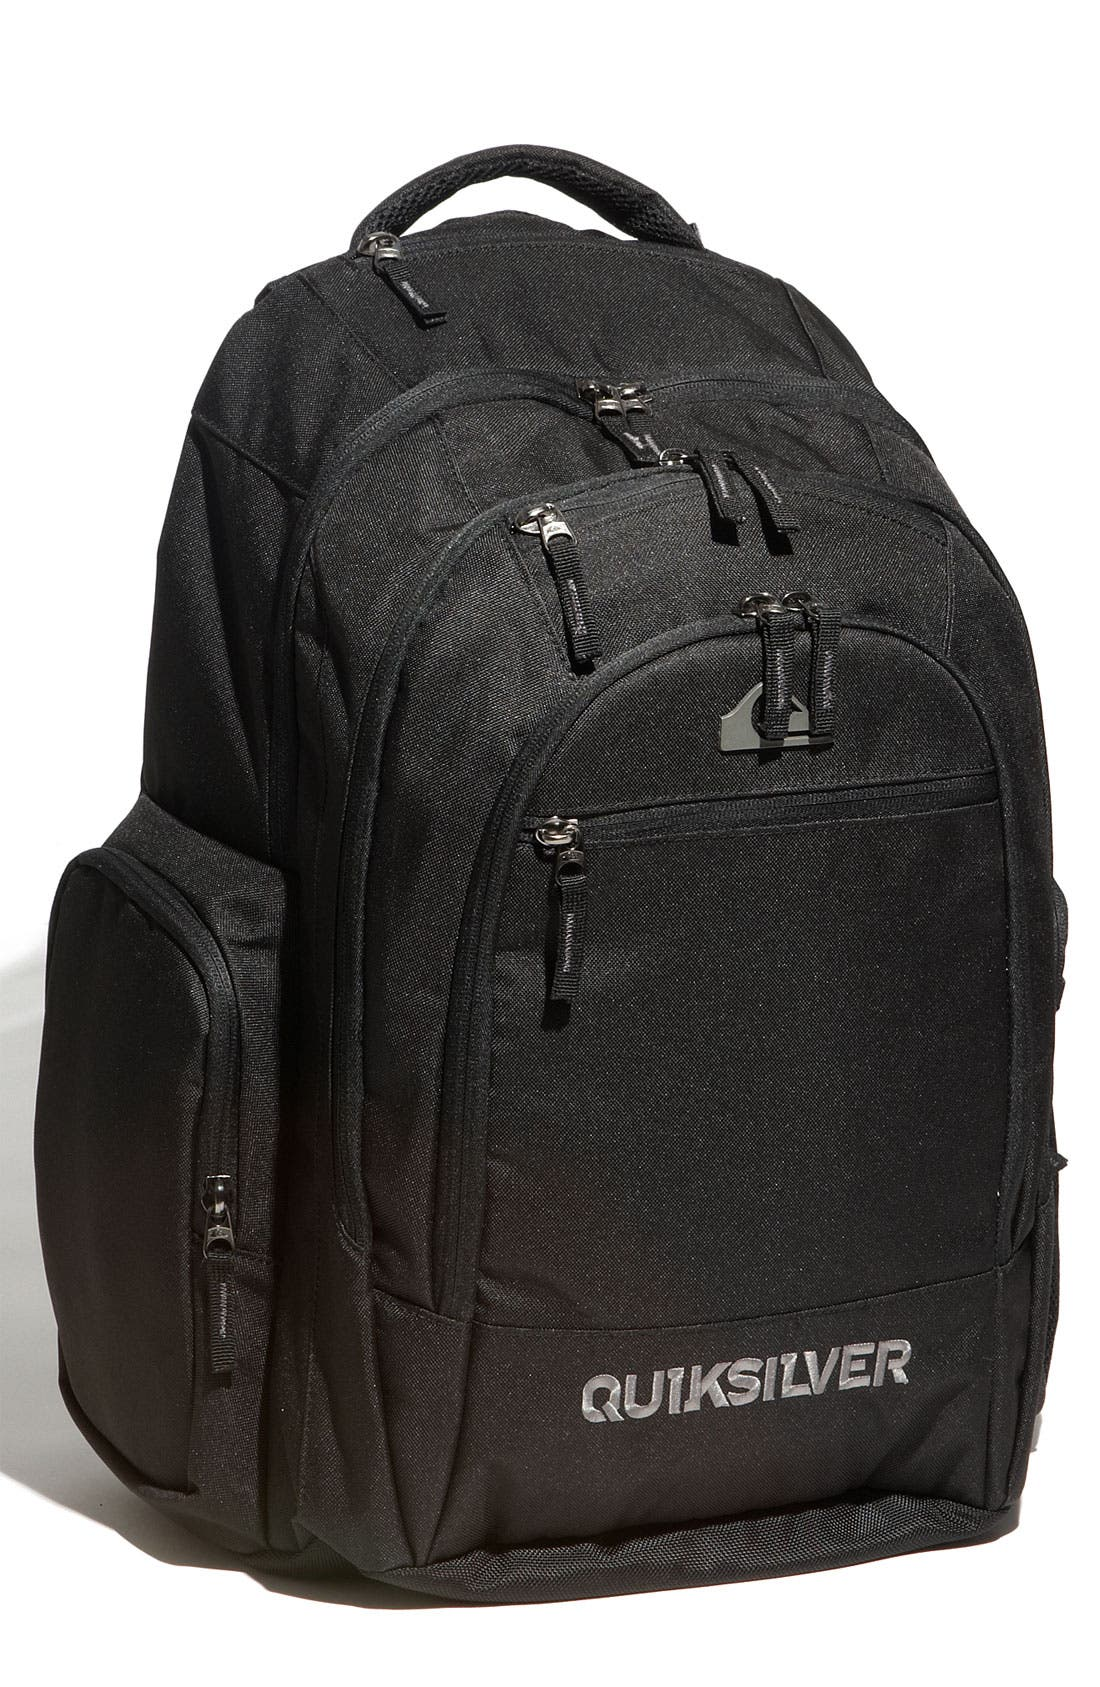 Alternate Image 1 Selected - Quiksilver 'Daddy Daybag' Diaper Bag